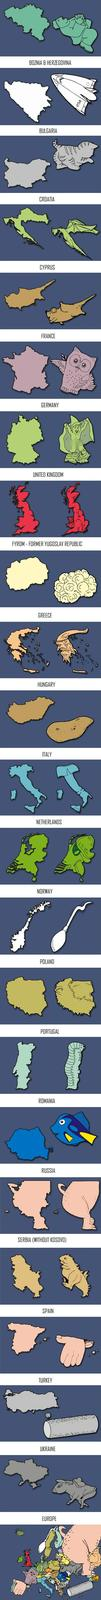 Europe According To Creative People